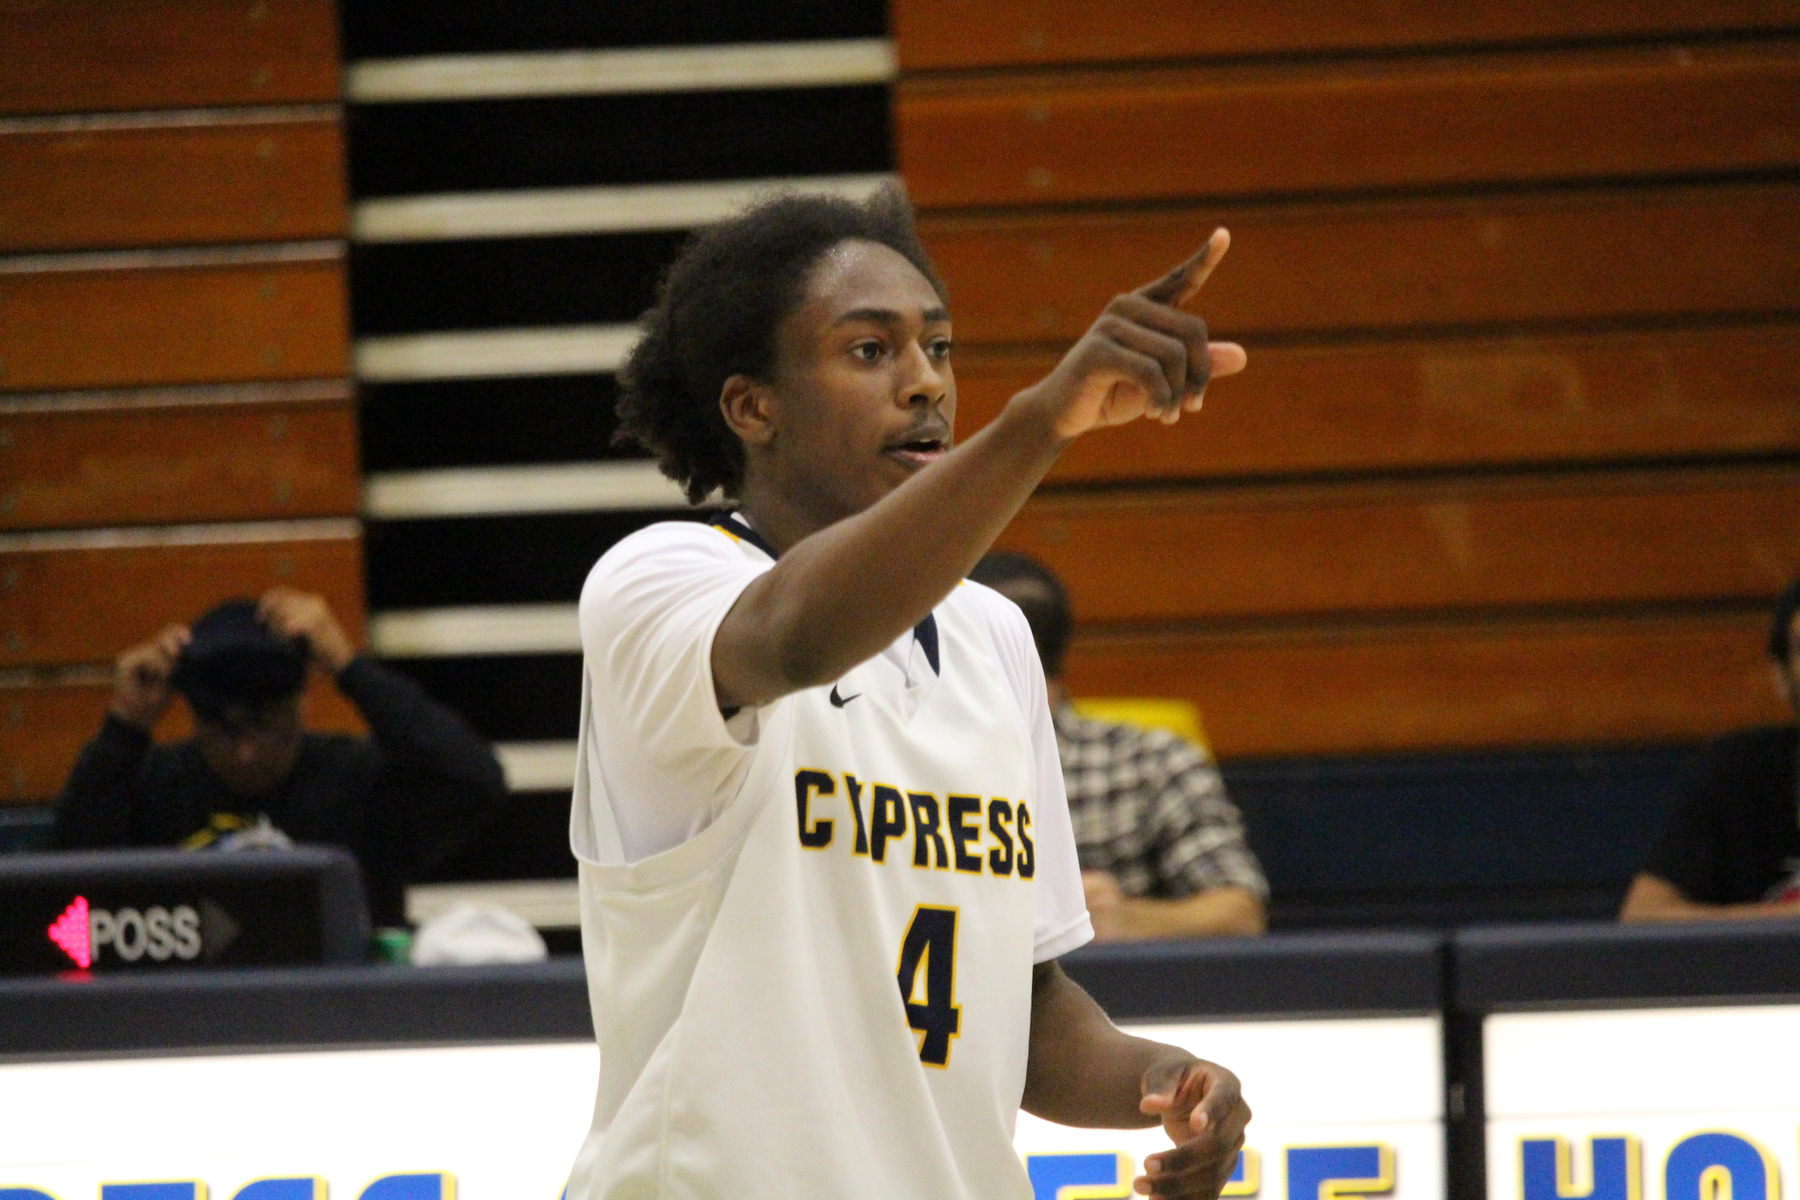 Huge First Half Propels Chargers Past Cuyamaca, 80-62